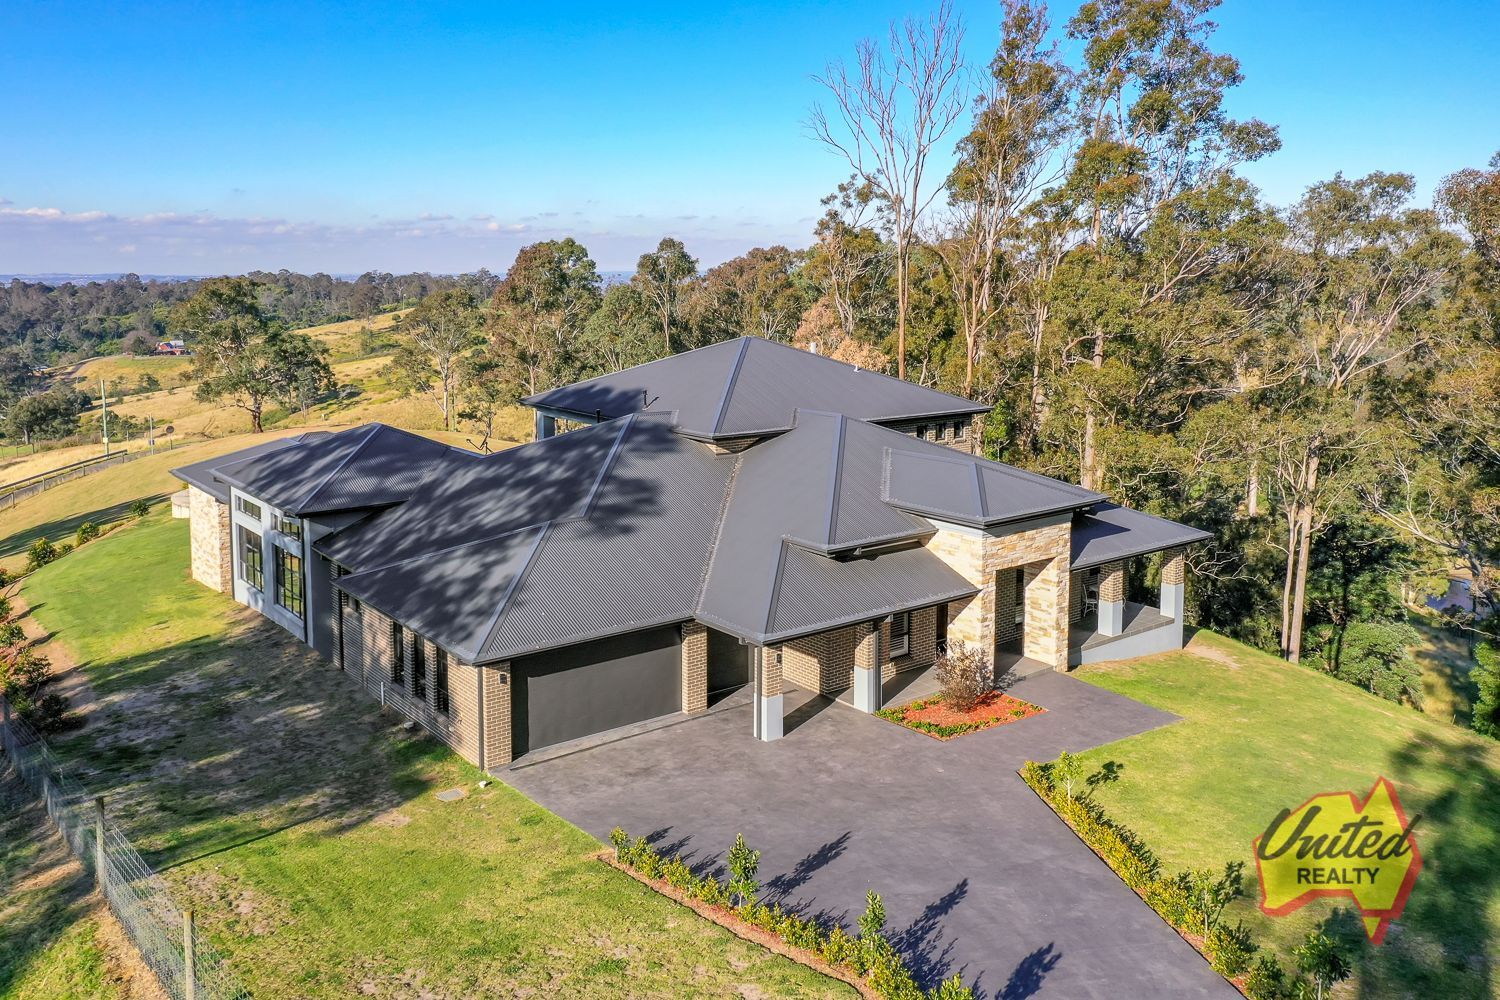 12/247 Garlicks Range Road, Orangeville NSW 2570, Image 0